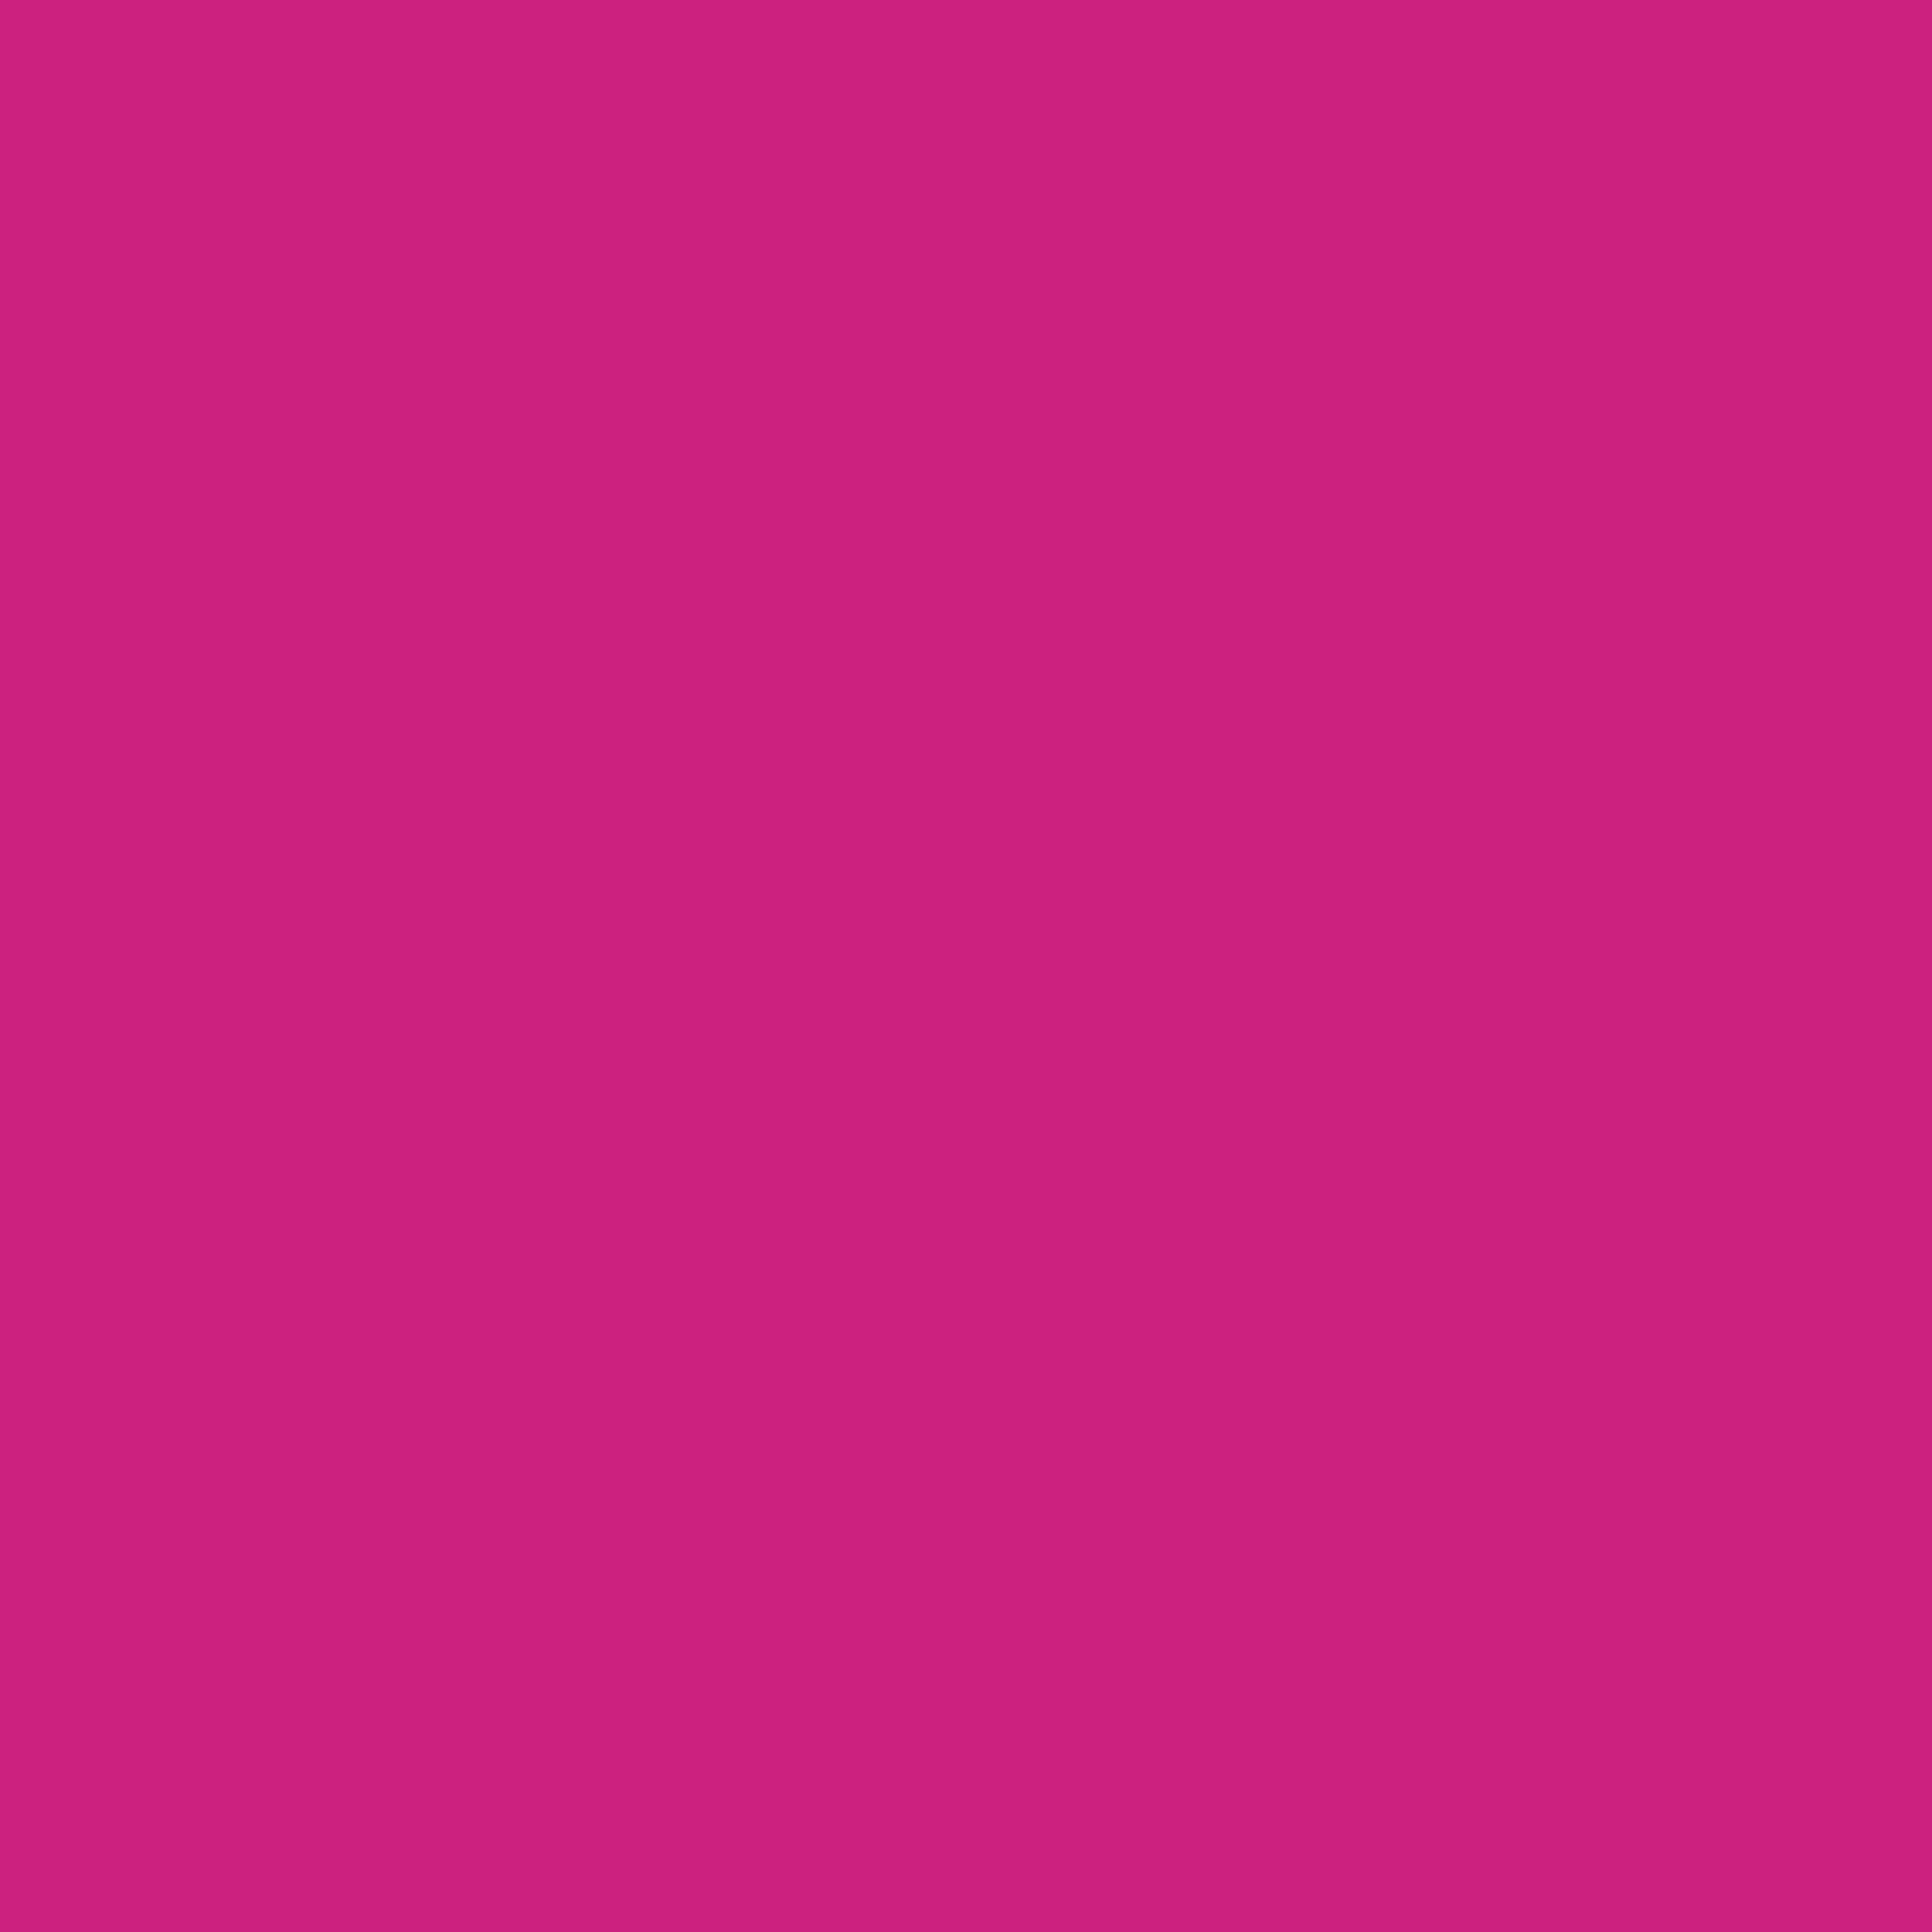 2048x2048 Magenta Dye Solid Color Background